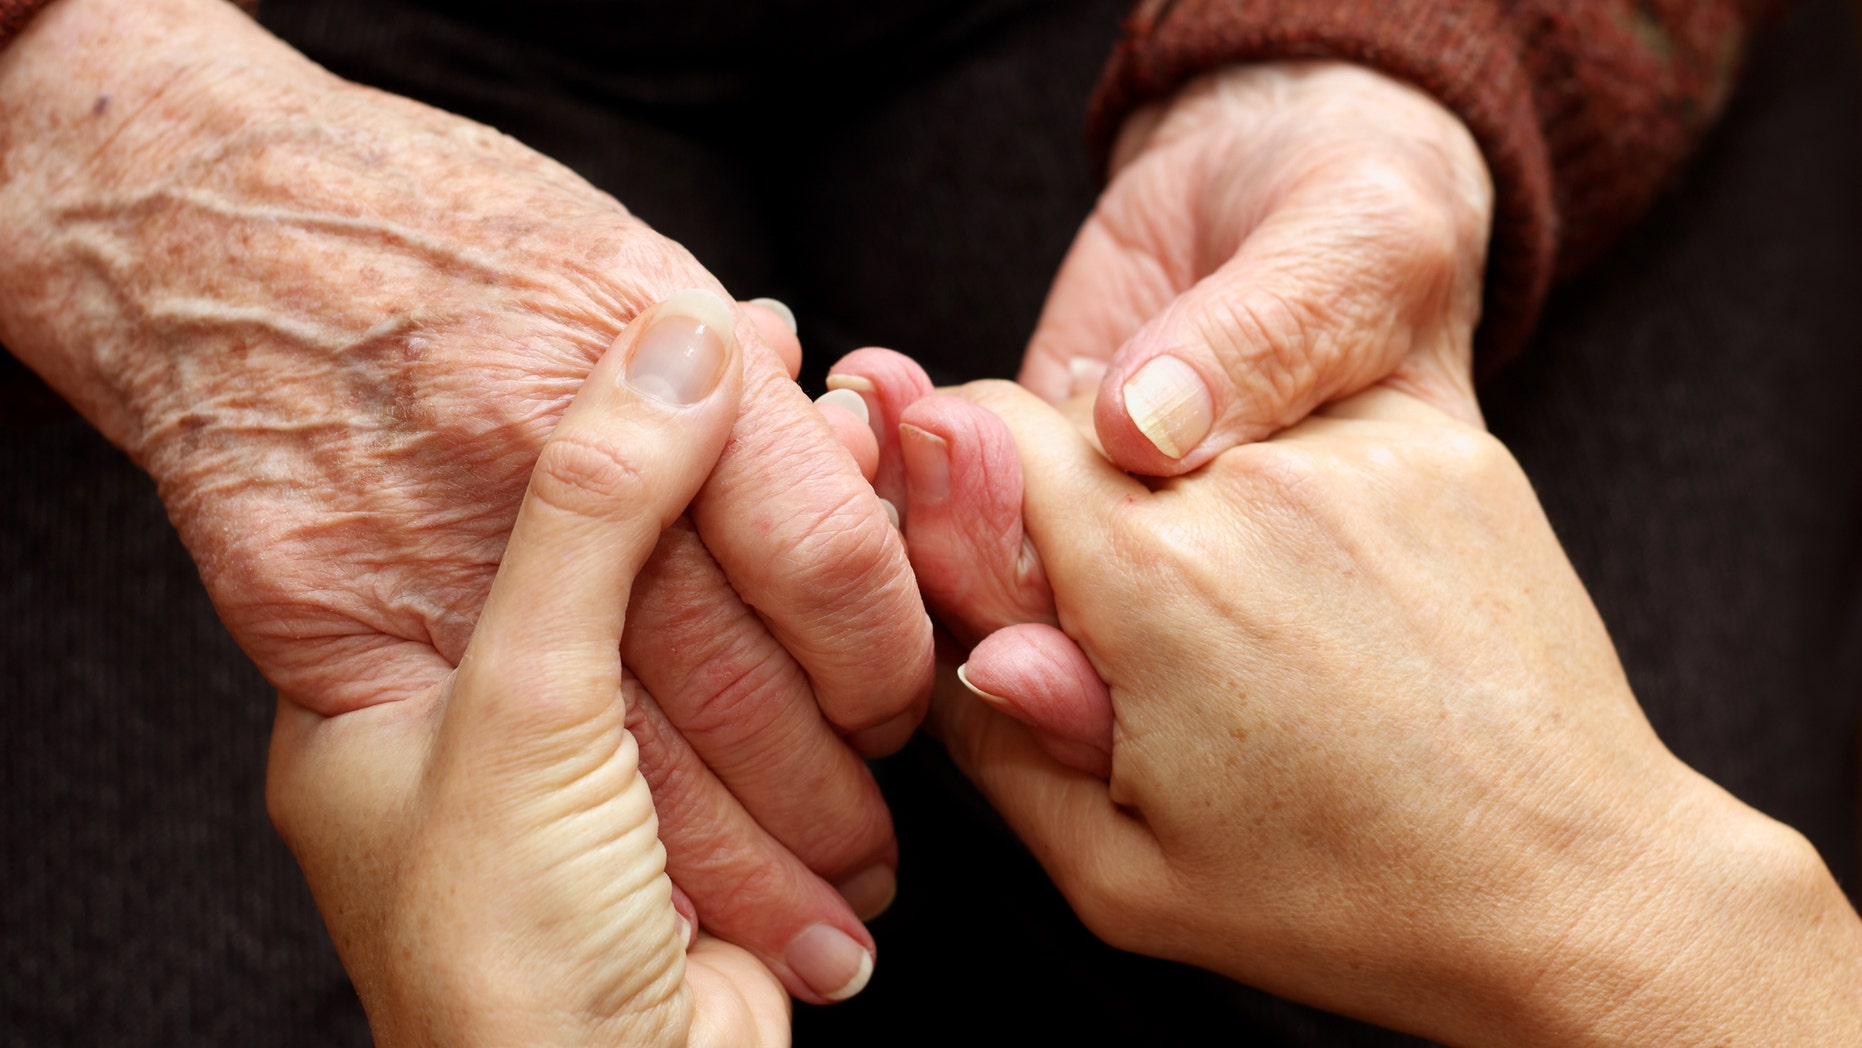 The hands of a young woman takes those of an older person as a sign of support and help